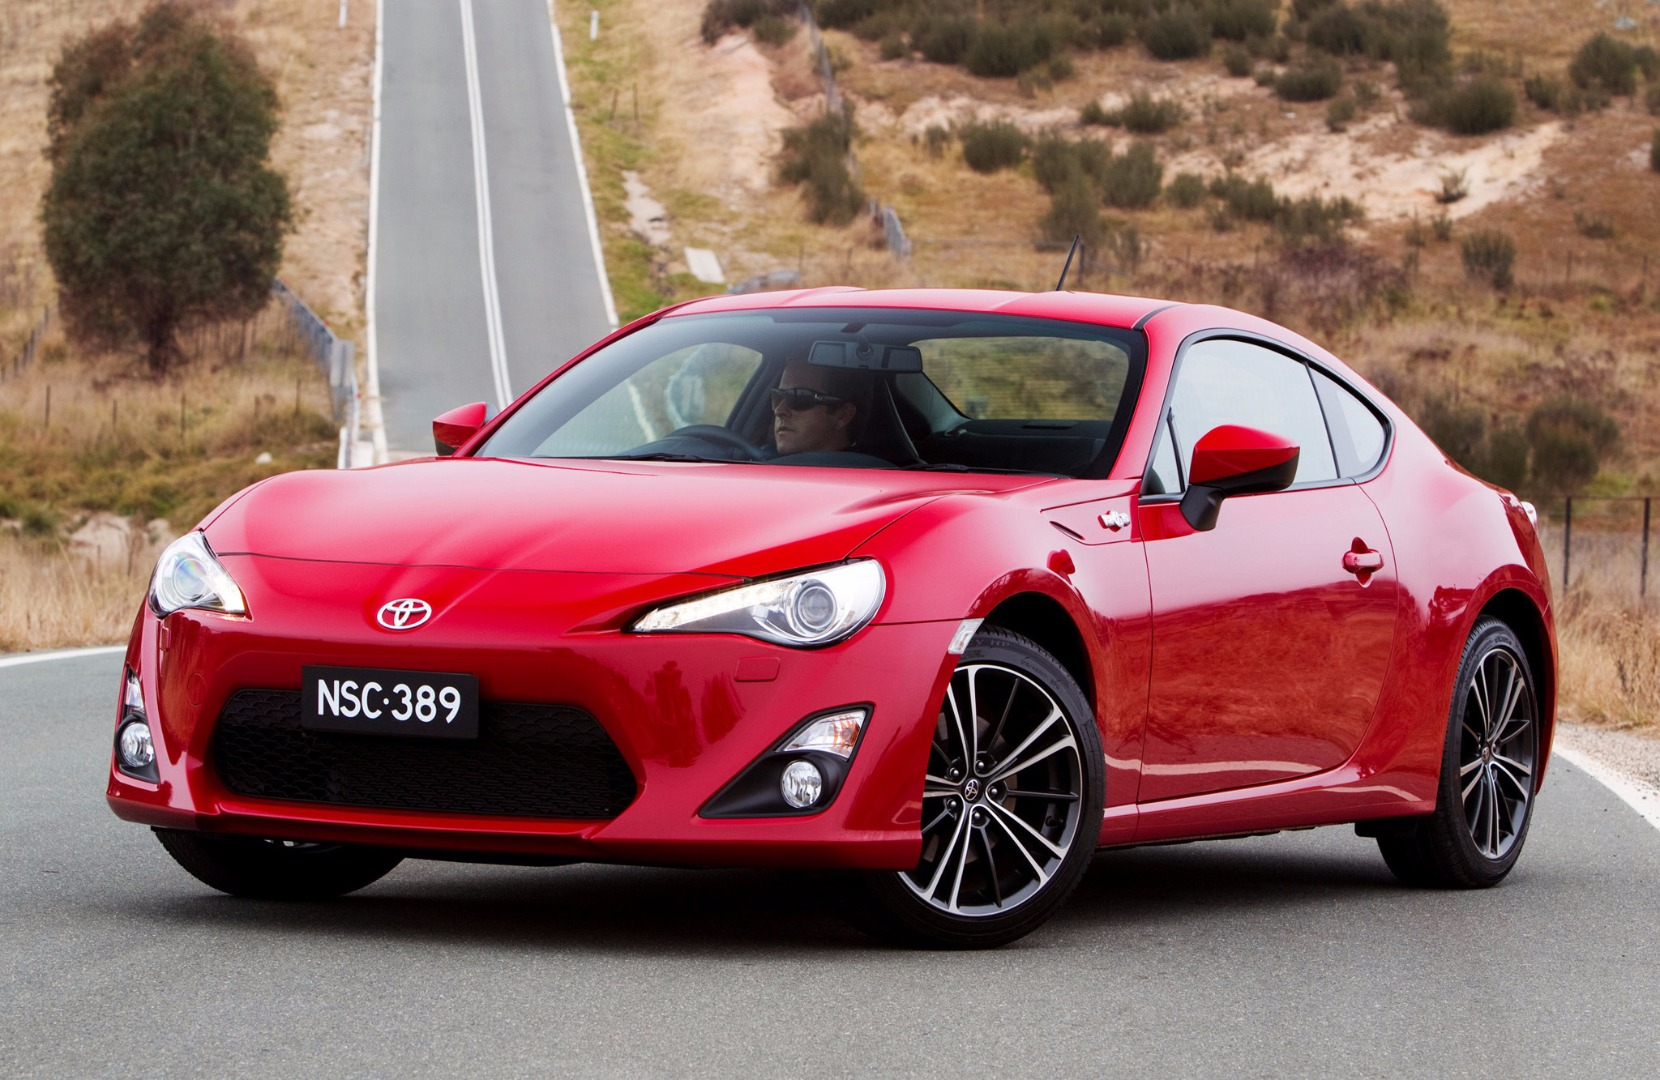 news toyota 86 subaru brz recalled for steering fault. Black Bedroom Furniture Sets. Home Design Ideas